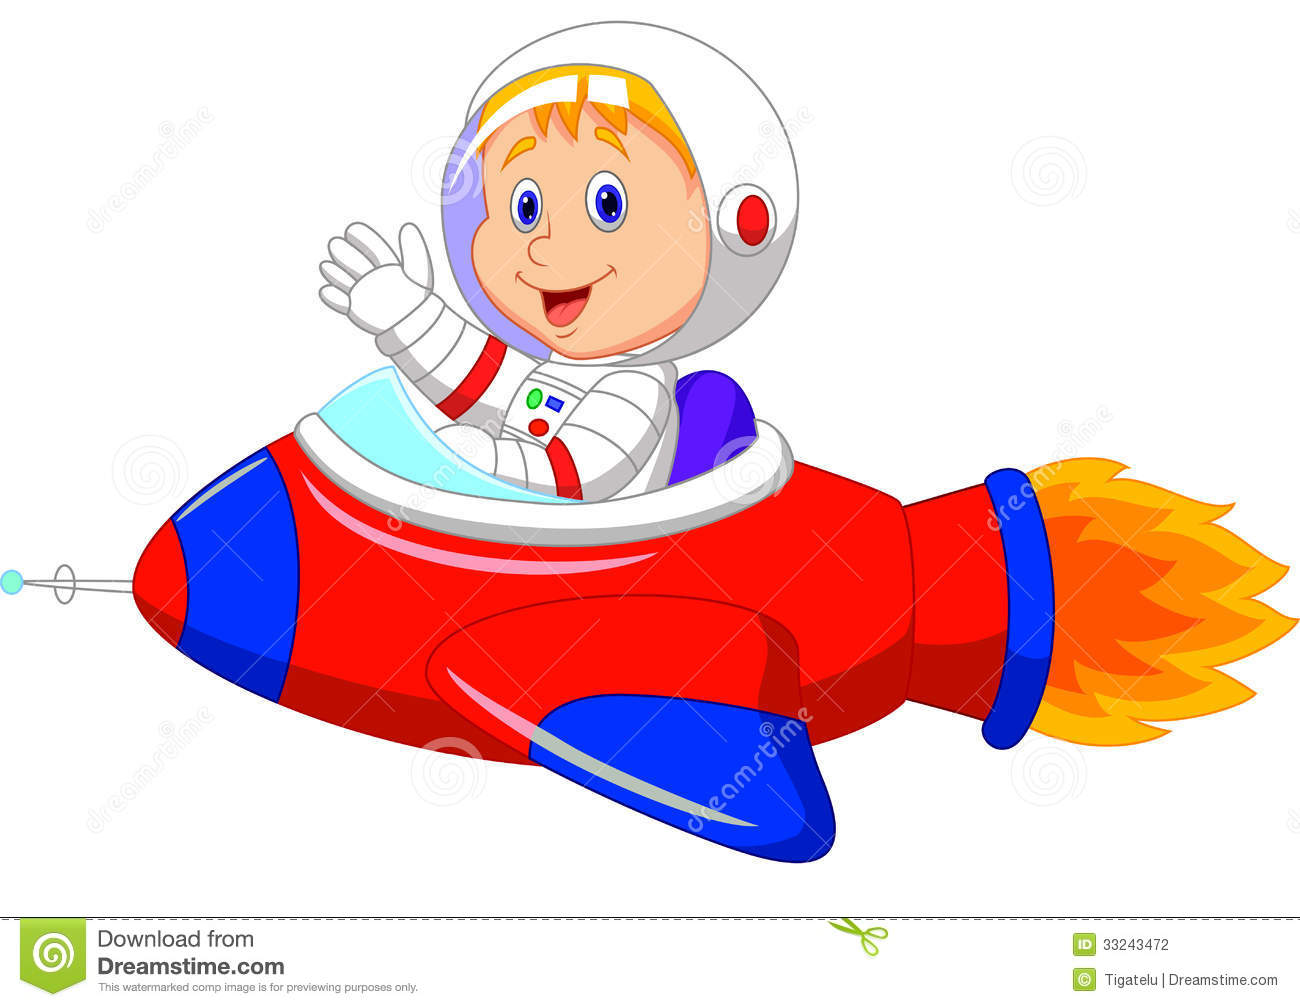 Pictures spaceships free download. Spaceship clipart future